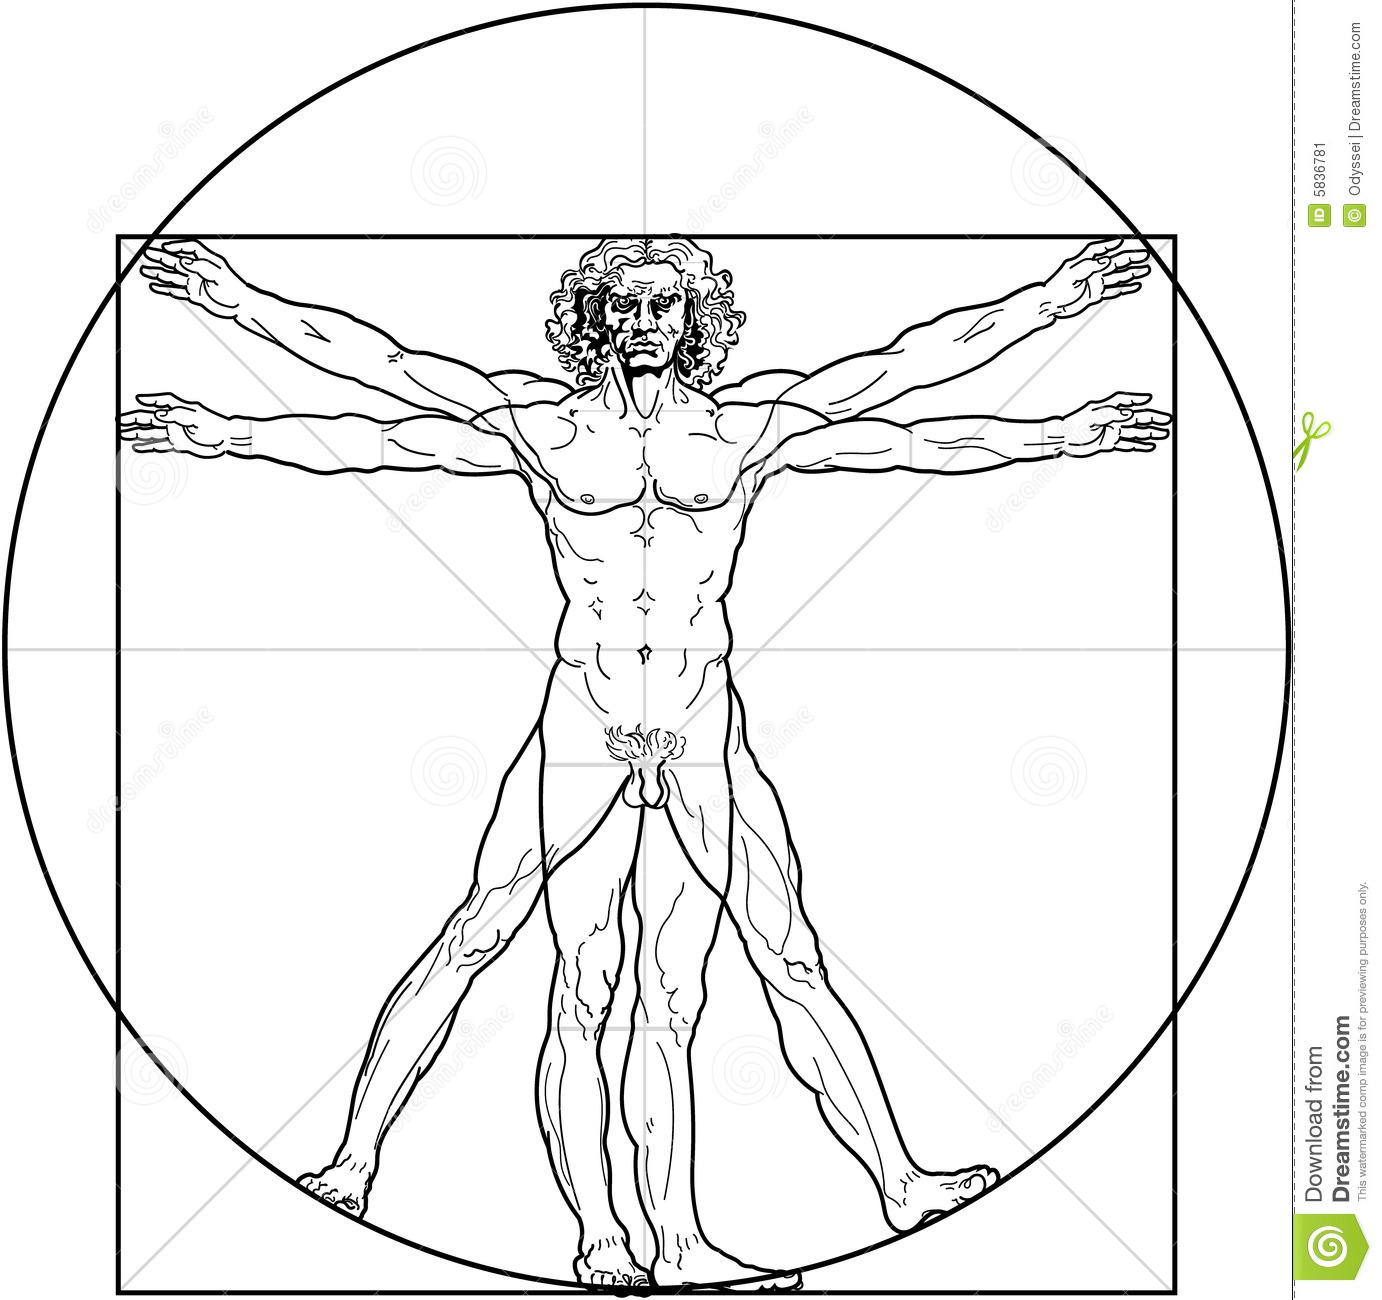 Vitruvian man and woman clipart.